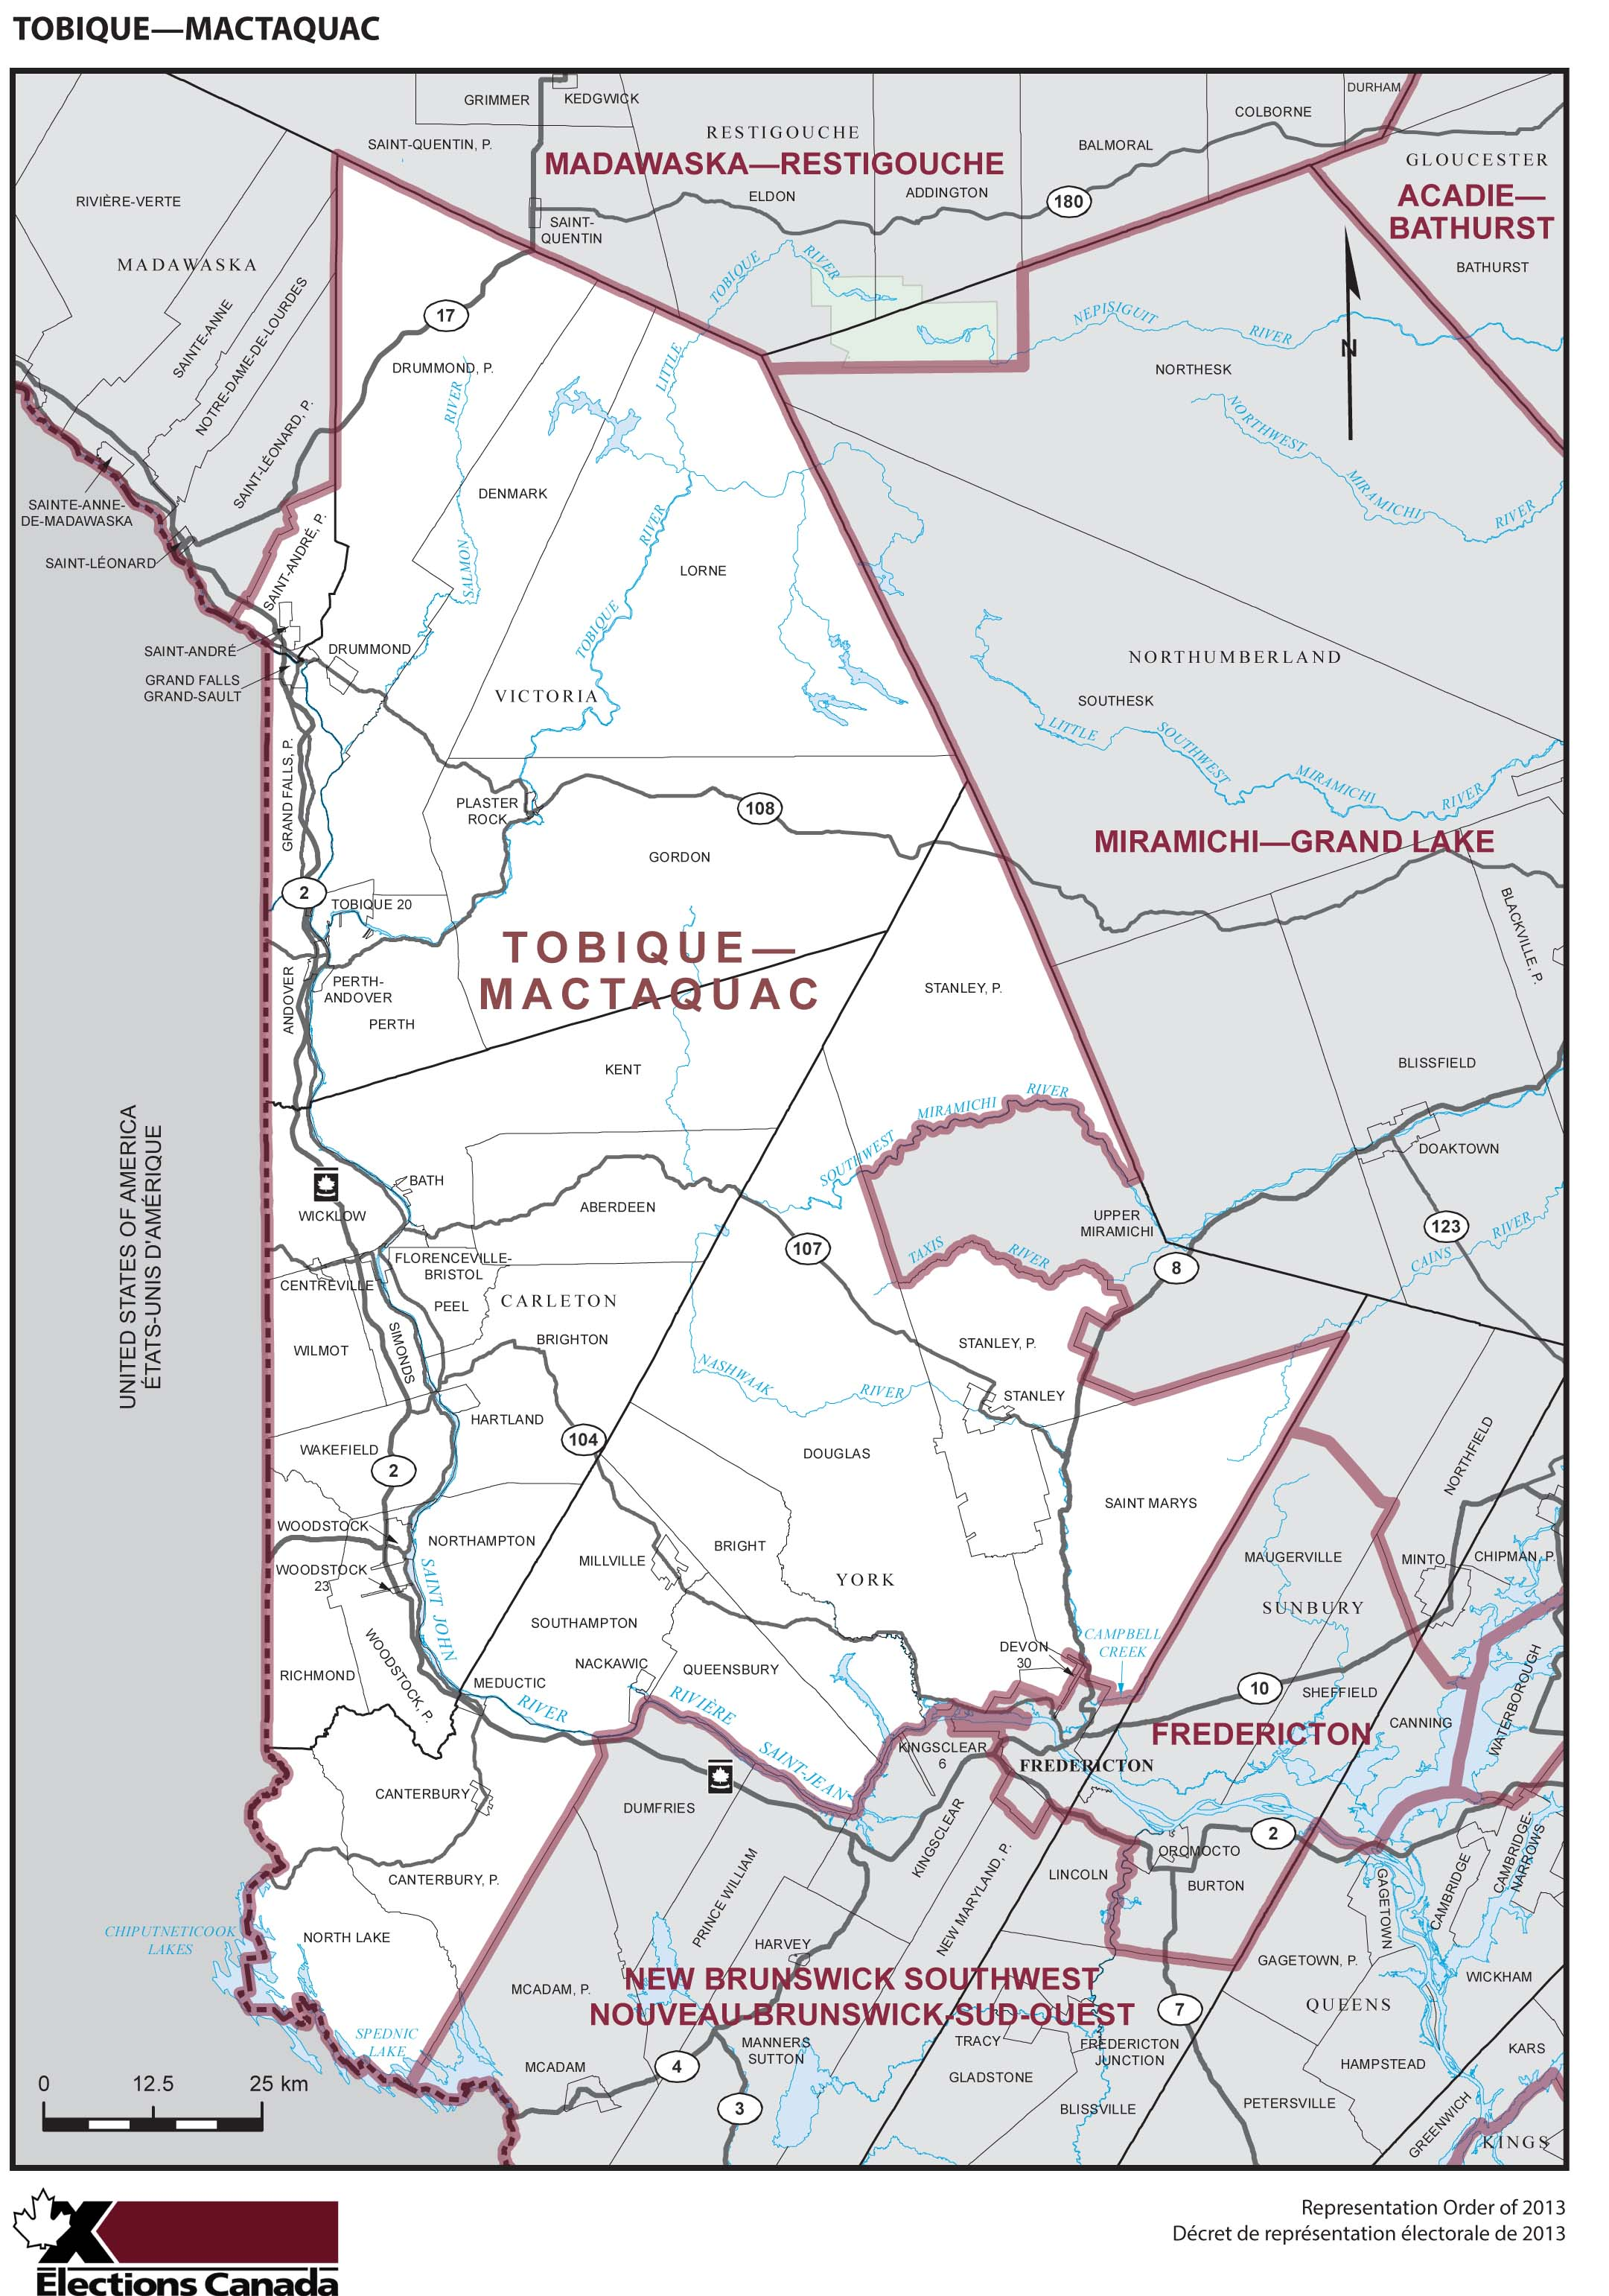 Map: Tobique--Mactaquac, Federal electoral district, 2013 Representation Order (in white), New Brunswick